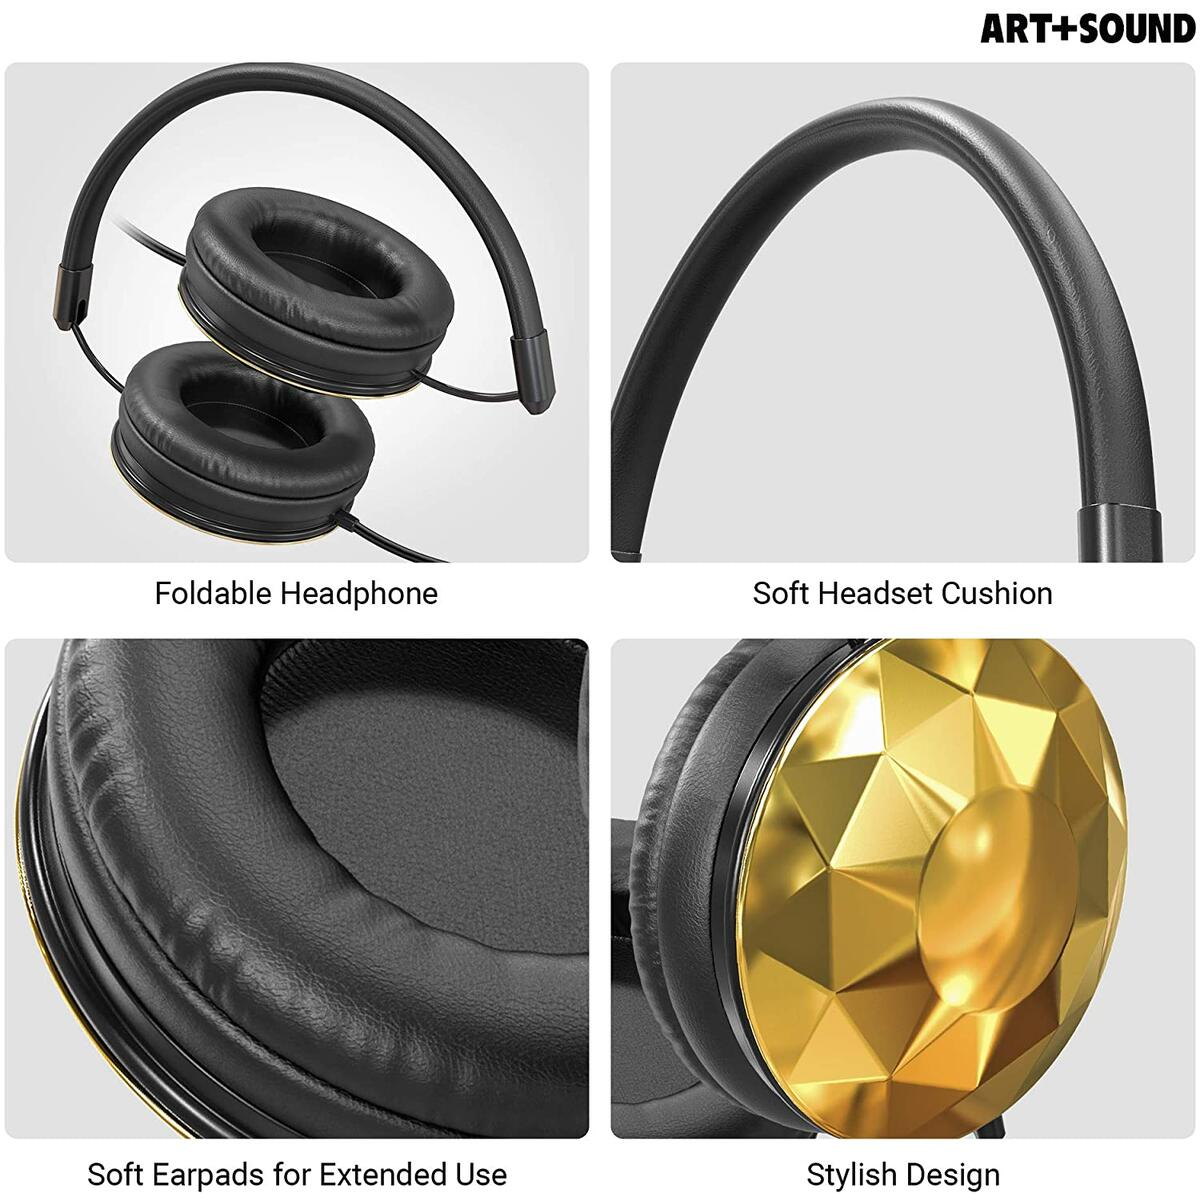 Wired Headphones by ART+SOUND, Faceted Design with Adjustable Band, Soft Cushion Pads, Foldable Design - Gold